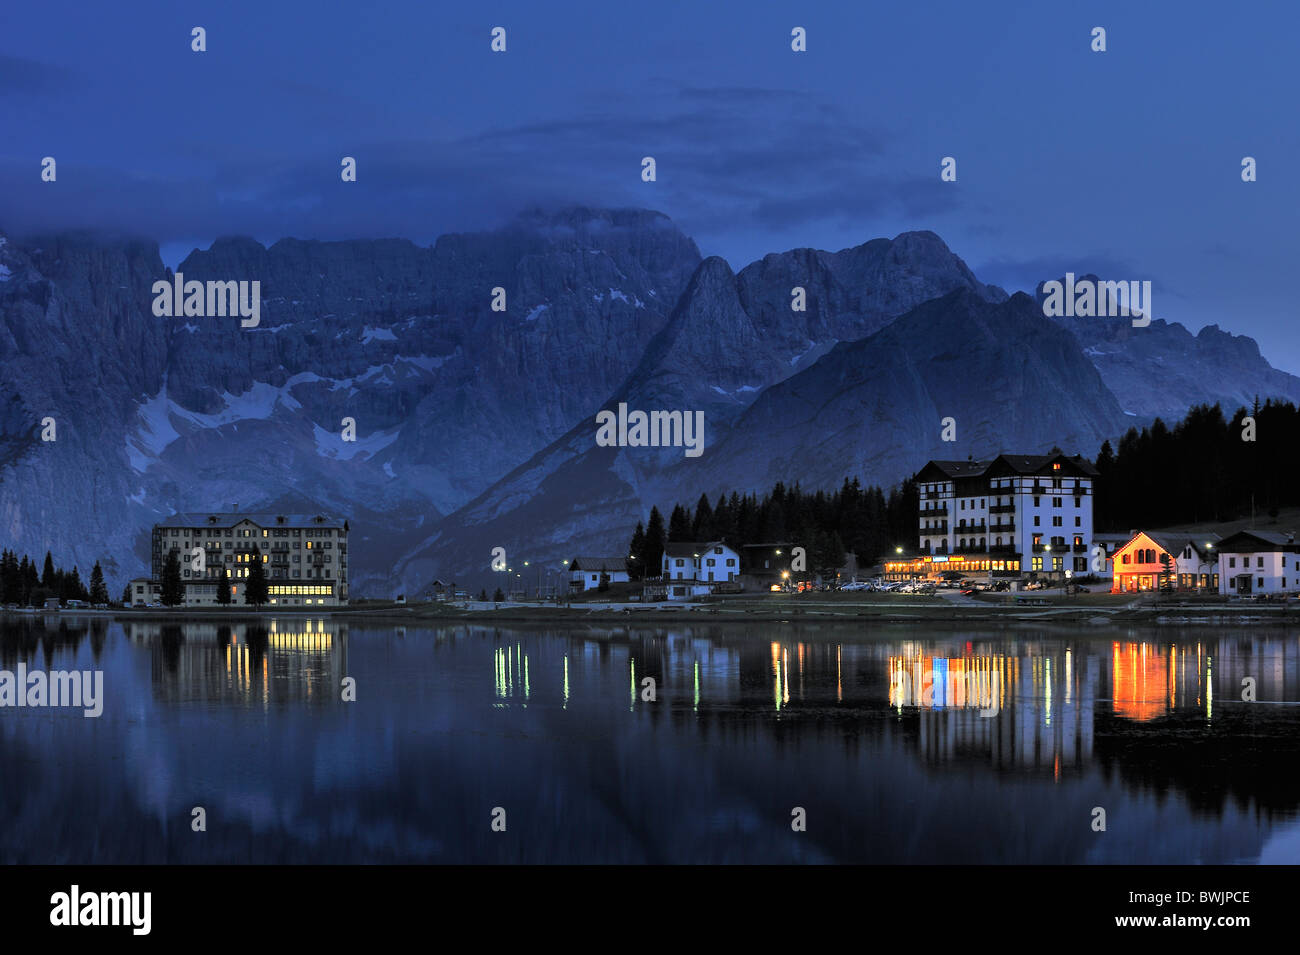 The mountain range Gruppo del Sorapis and hotels at night along lake Lago di Misurina in Auronzo di Cadore, Dolomites, - Stock Image